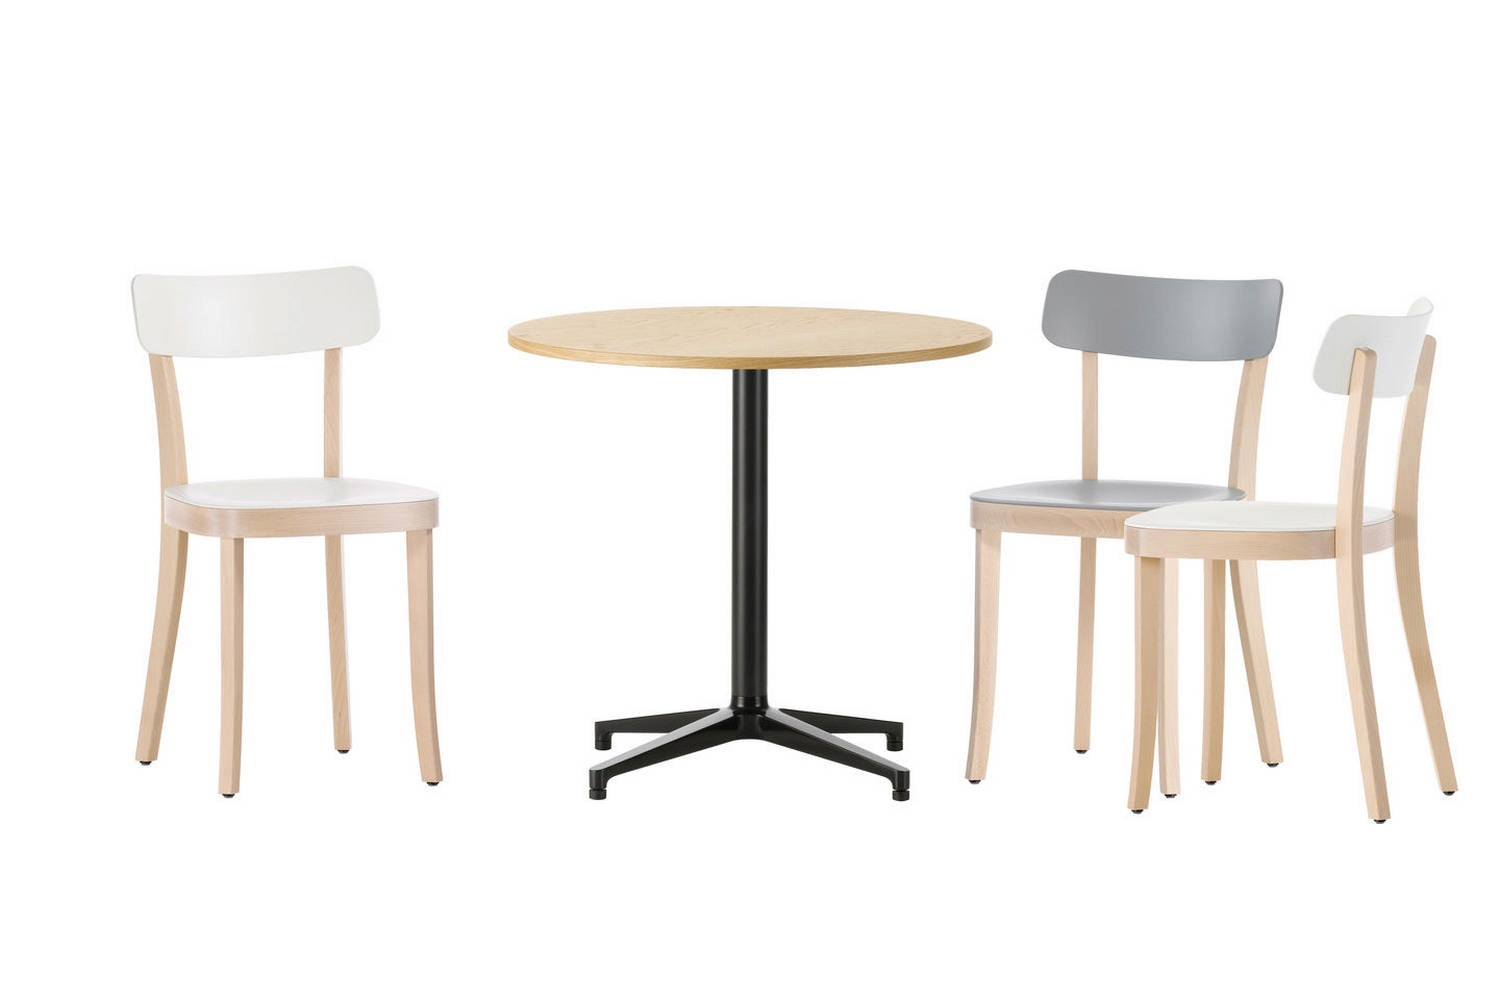 Bistro Table by Ronan & Erwan Bouroullec for Vitra